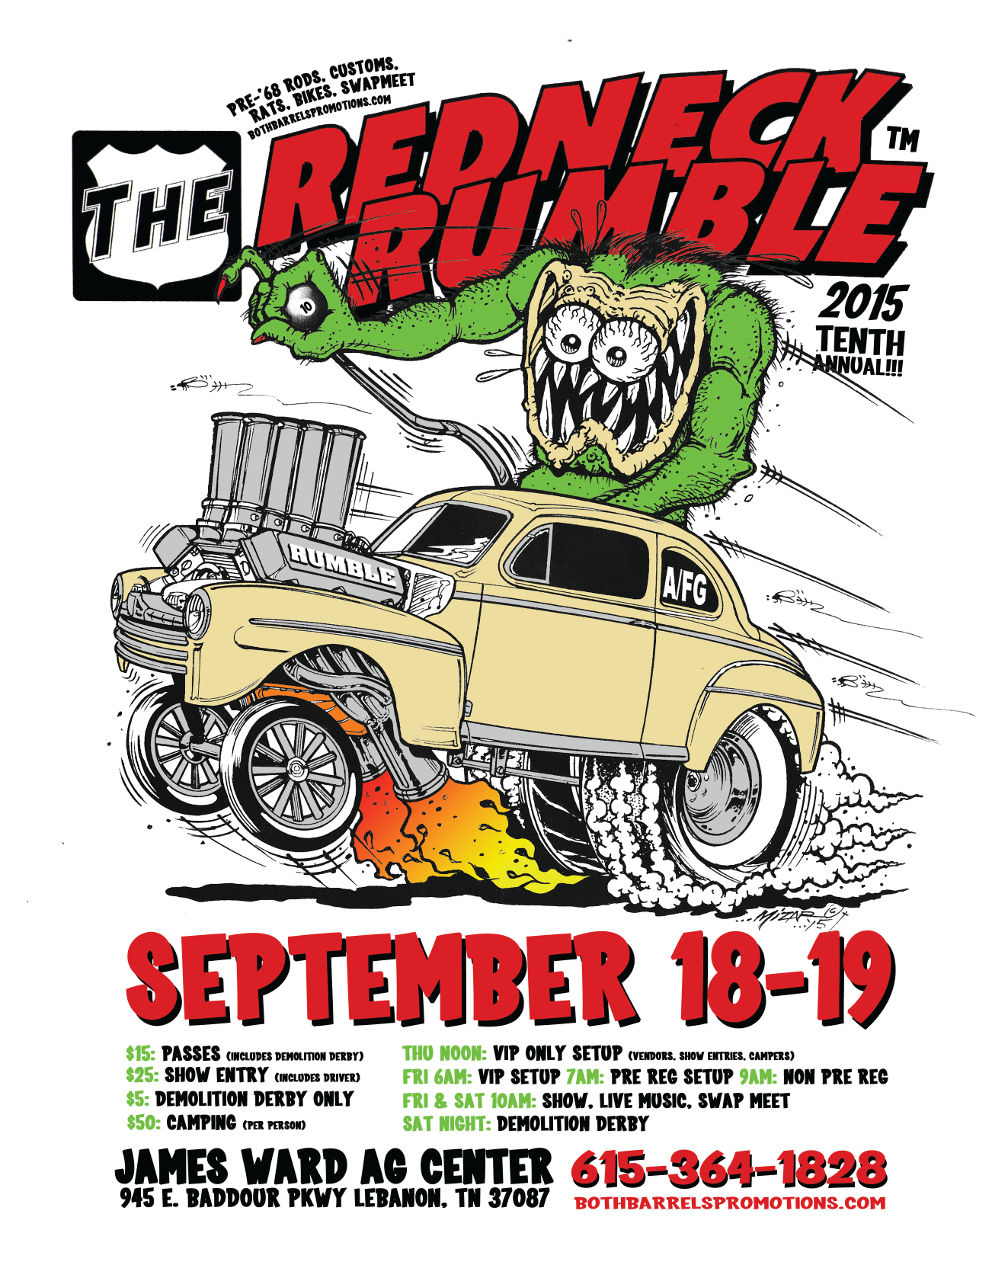 red-neck-rumble-flyer-2015